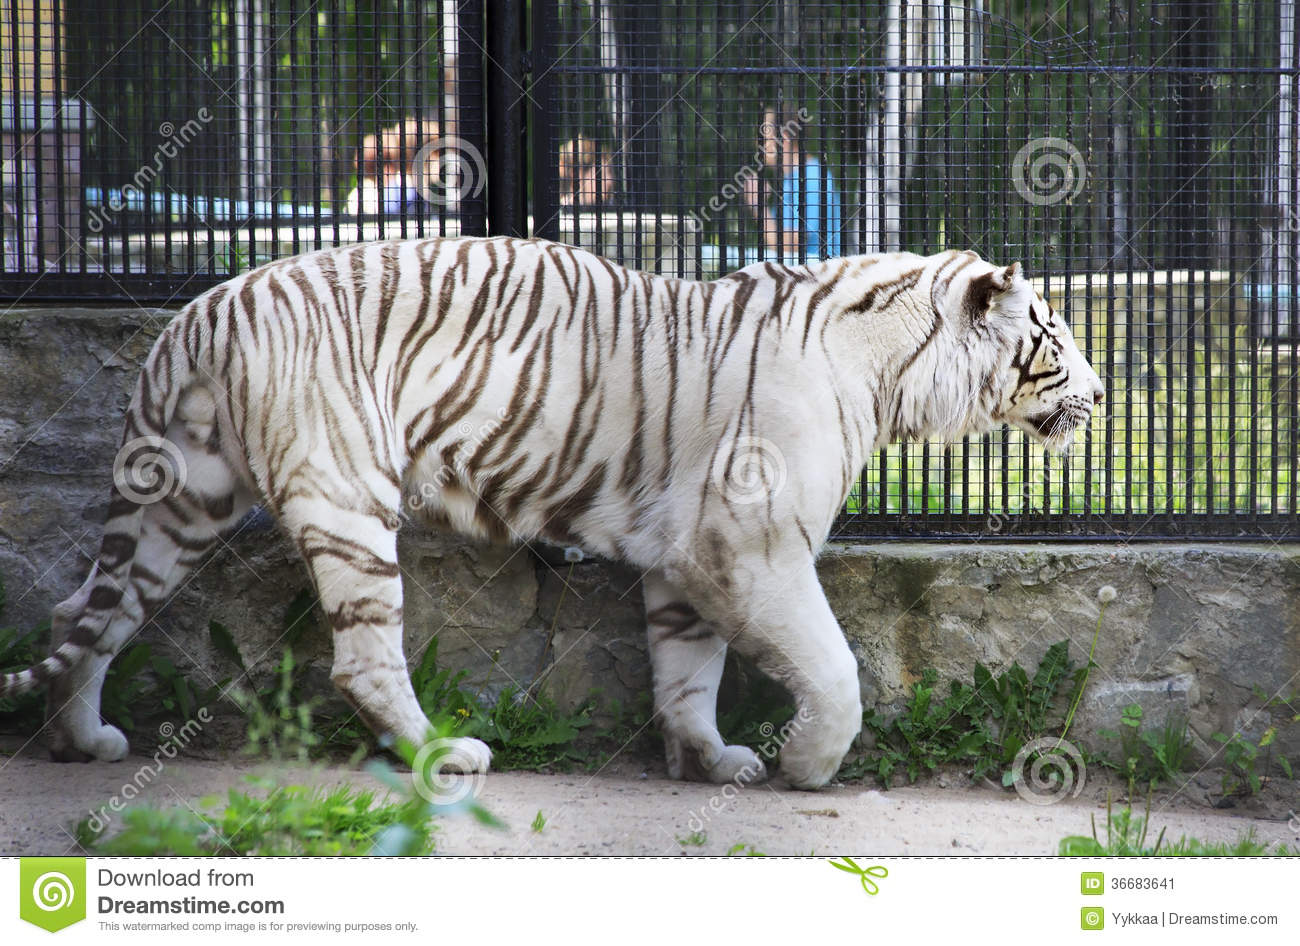 Beautiful white tiger in a cage stock image image of russia aviary 36683641 - Tiger in cage images ...